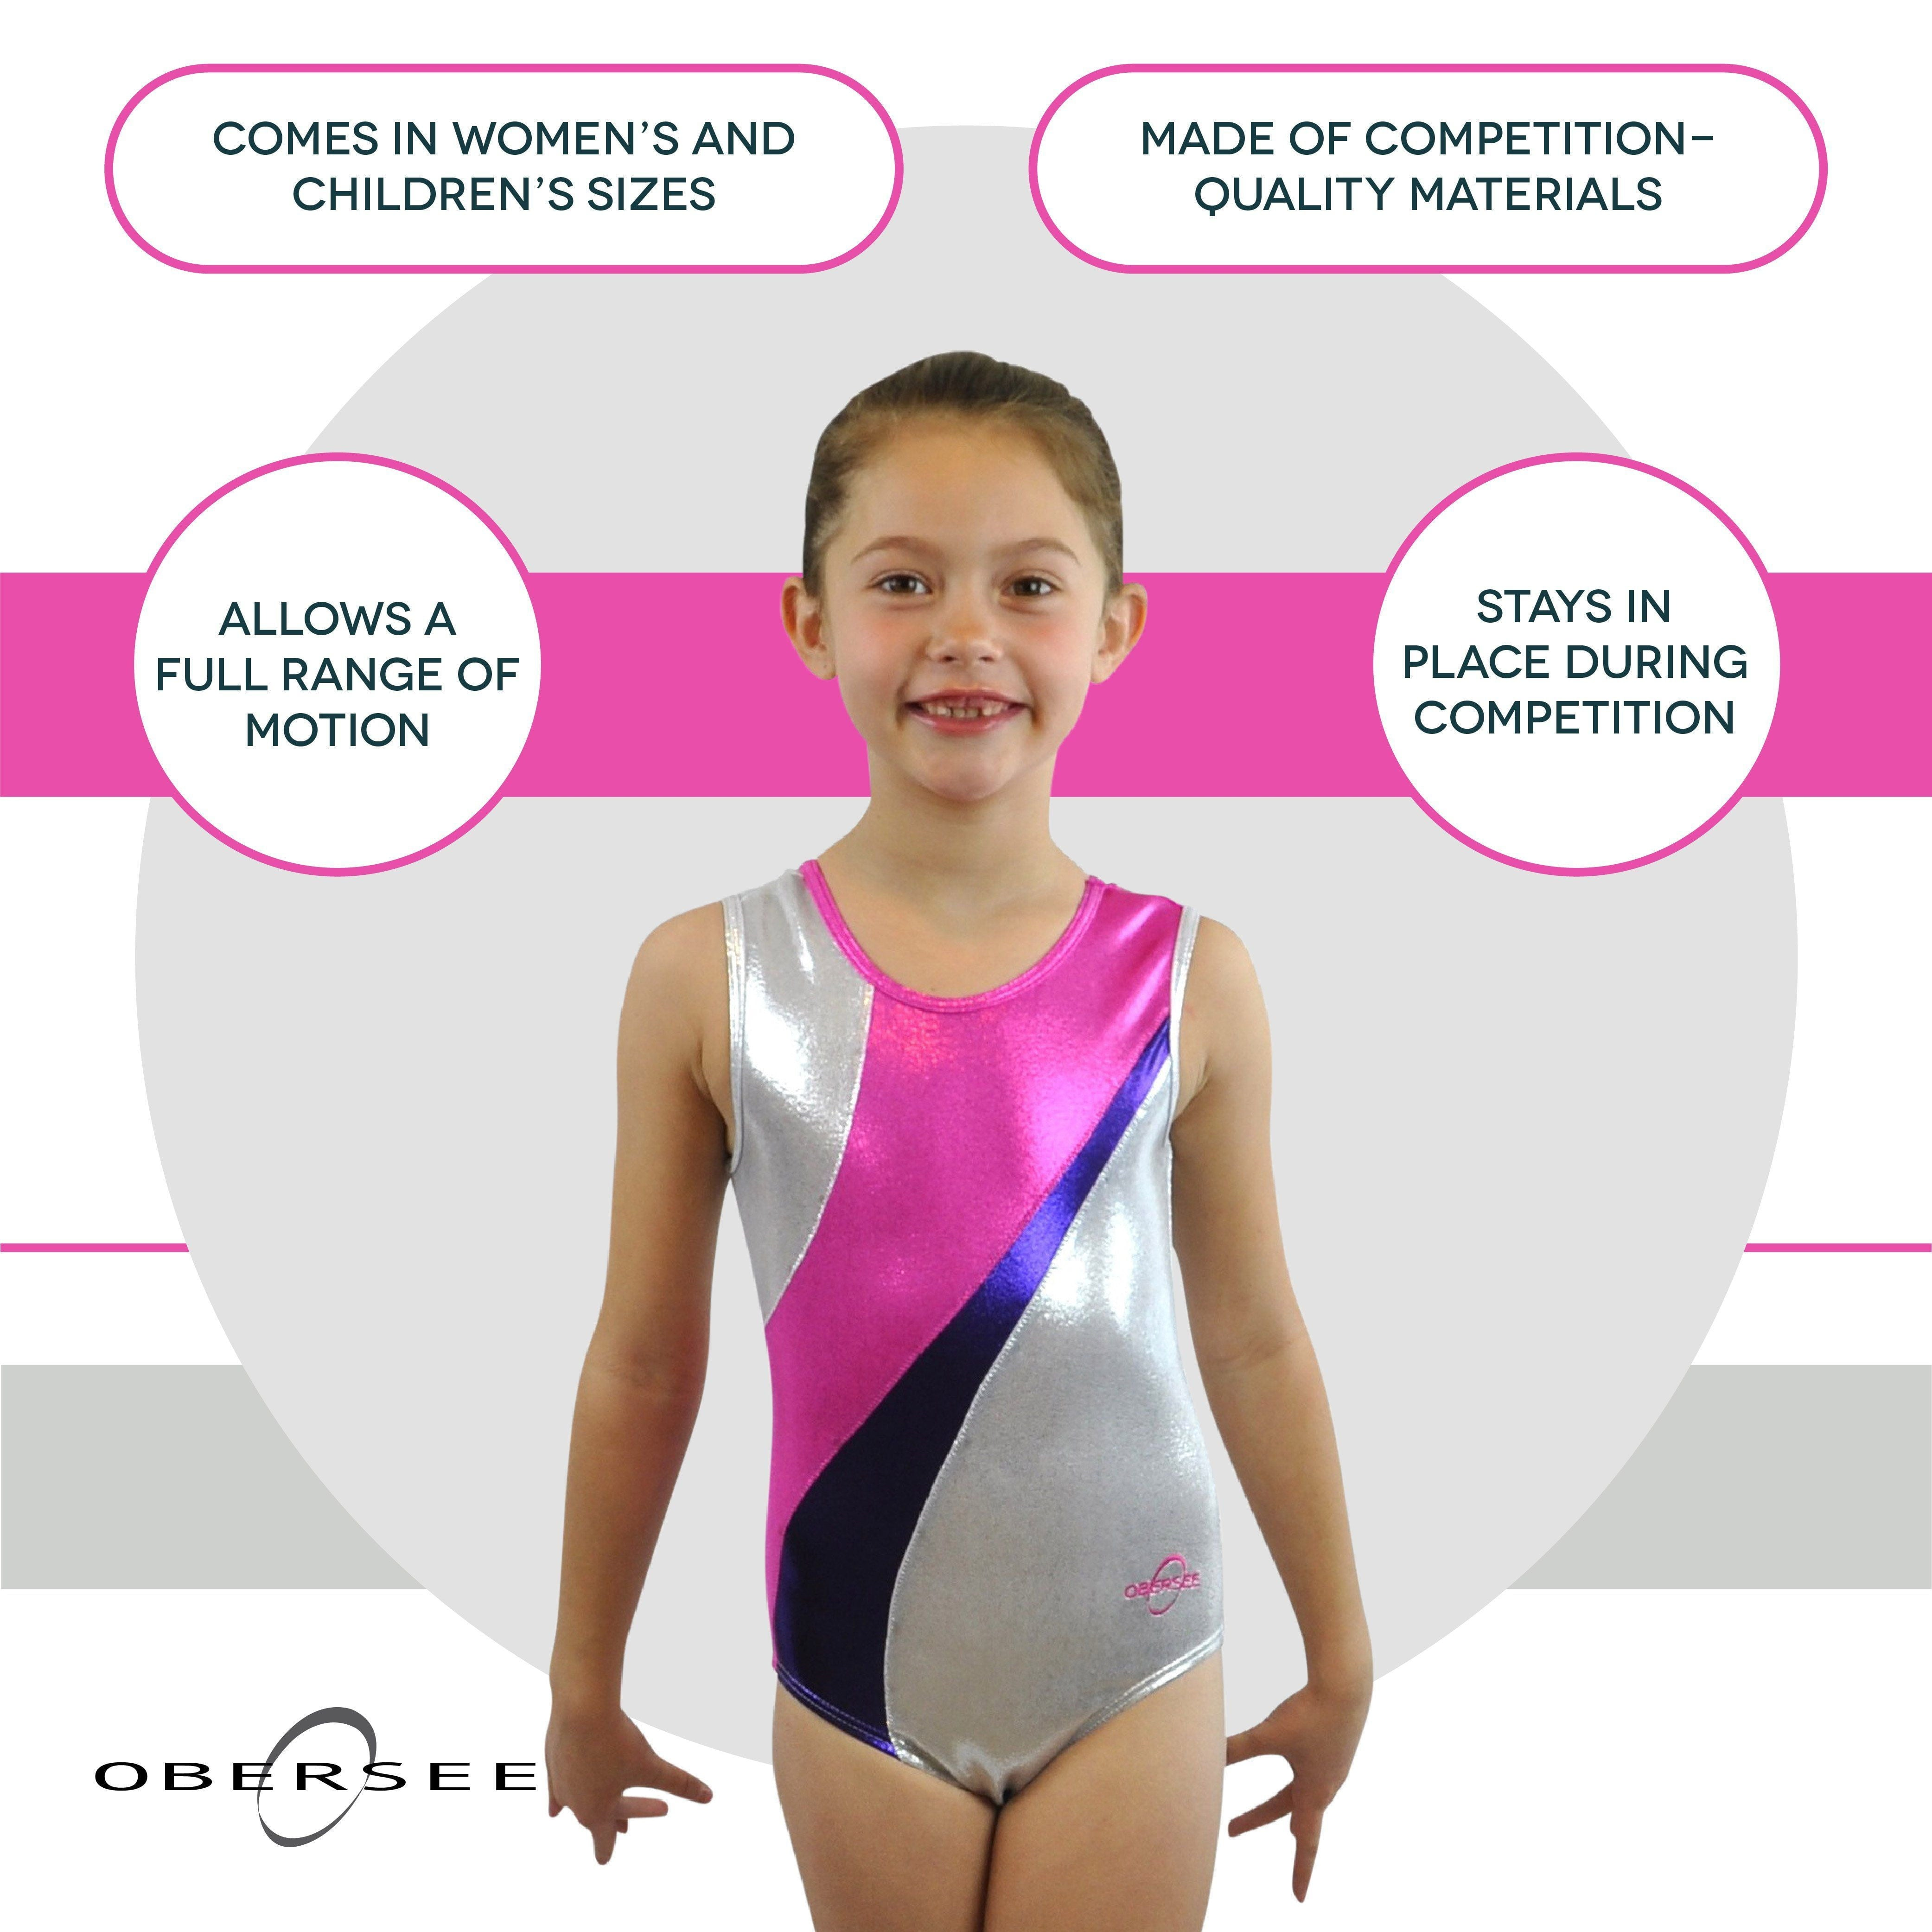 O3GL057 Obersee Girl's Girls Gymnastics Leotard - Silver Curve - Obersee